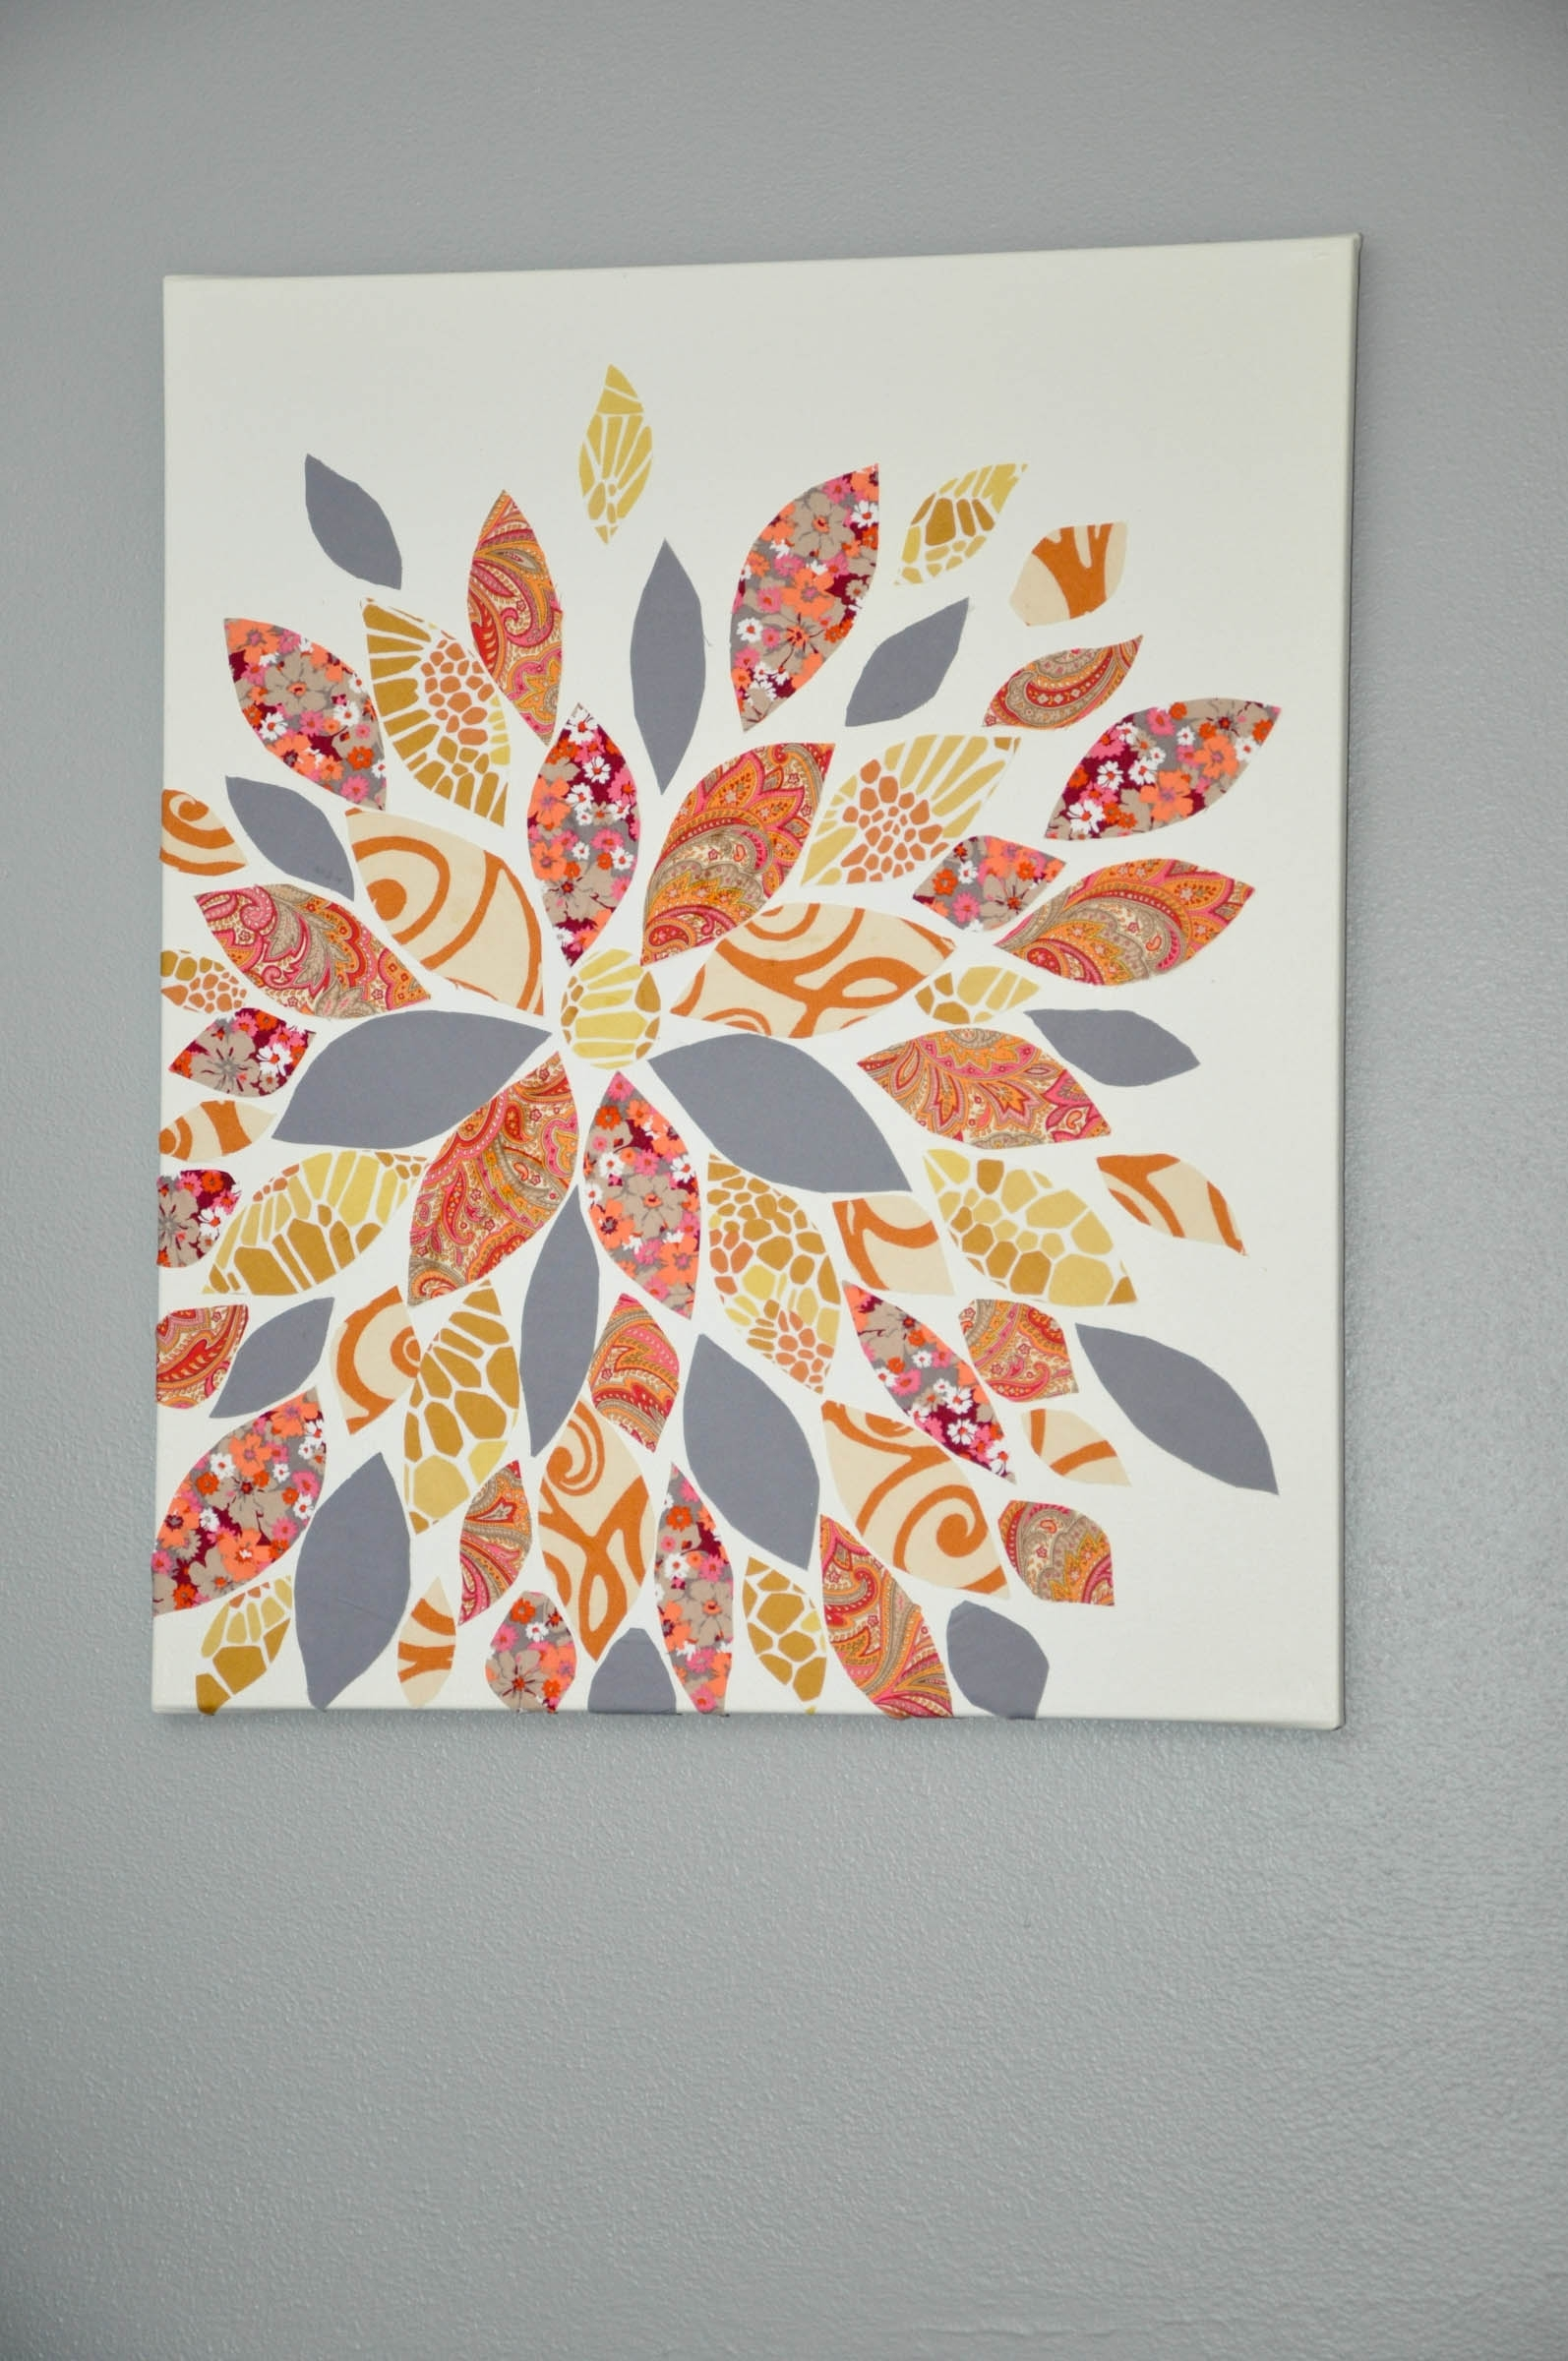 This Is So Cute And So Easy! Gosh I Can't Wait To Own My Own Within Most Current Fabric Flower Wall Art (View 14 of 15)